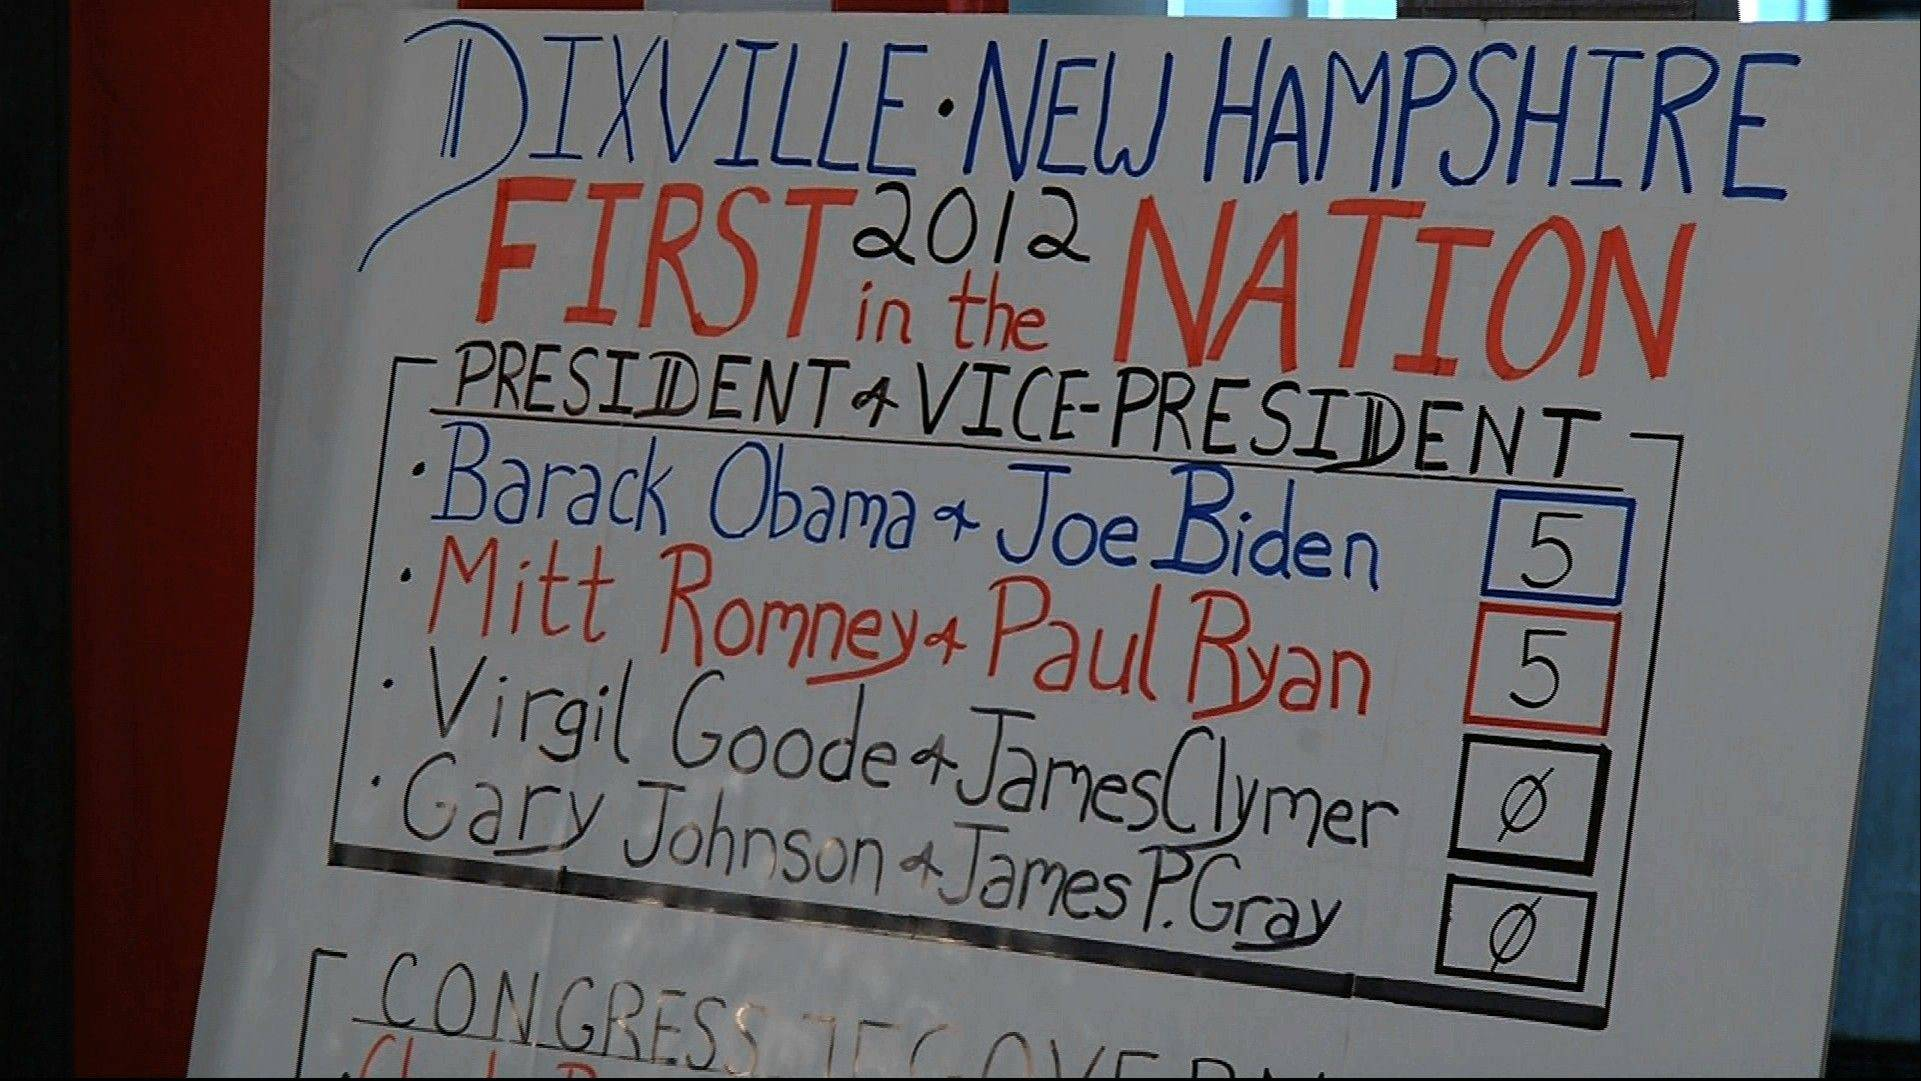 In this still frame made from video, the votes sheet shows the results from Dixville Notch, N.H., Tuesday, after residents cast the first Election Day votes in the nation. After 43 seconds of voting, President Barack Obama and Republican Mitt Romney each had 5 votes in Dixville Notch.